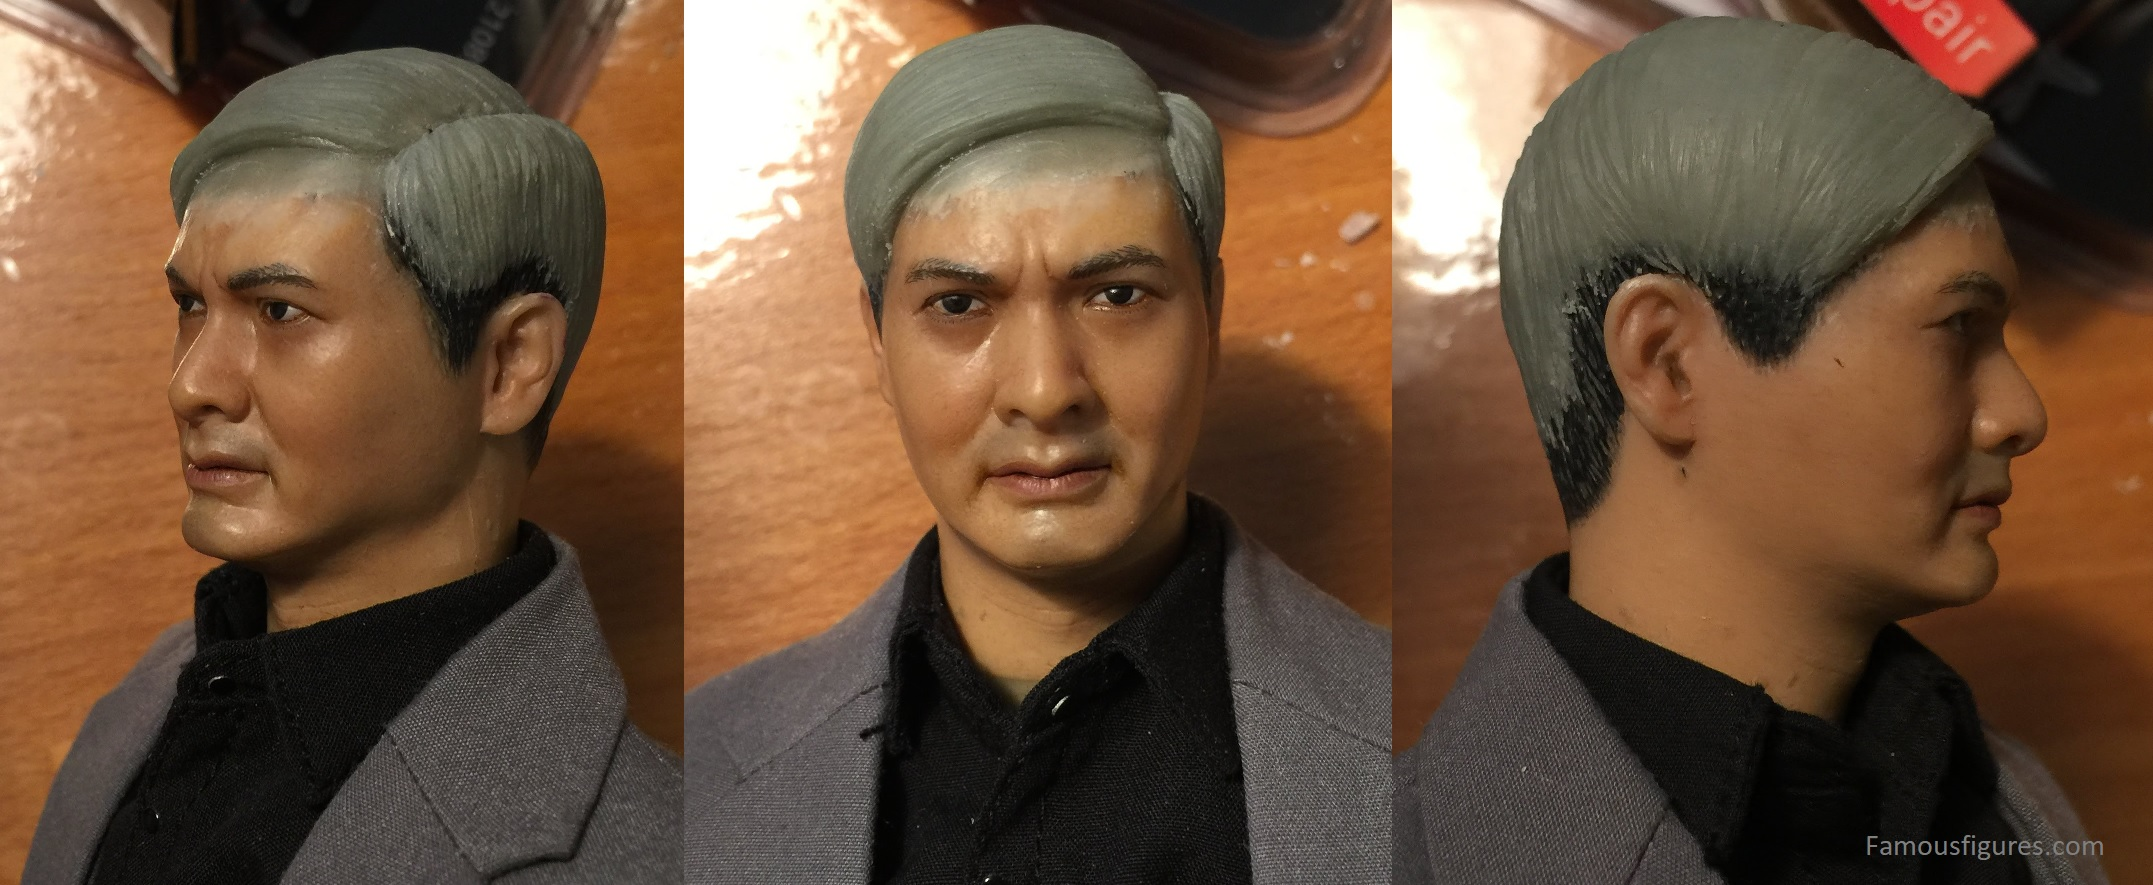 Chow Yun Fat in The Replacement Killers - Hair Sculpting Experiments 02_chowyunfat_head_replacementkillers